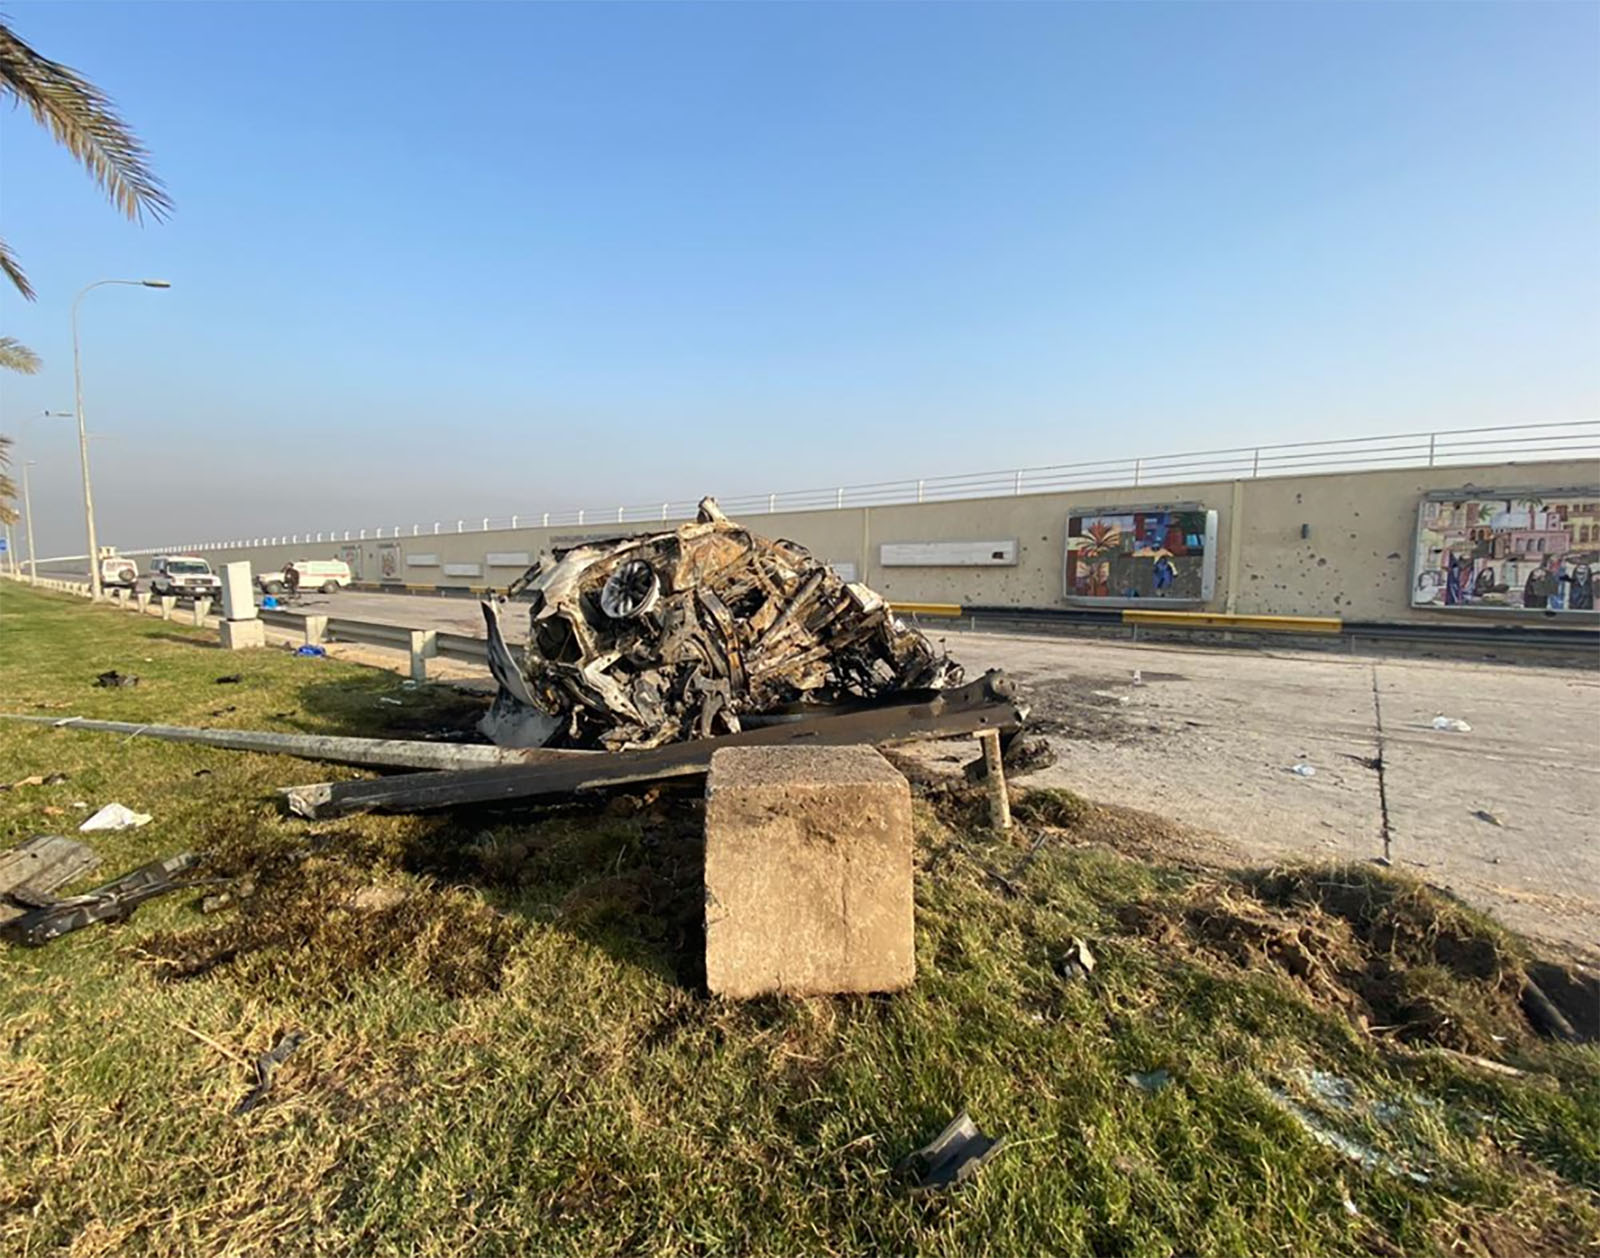 Debris from the airstrike at Baghdad airport is seen on Friday. Credit: Obtained by CNN